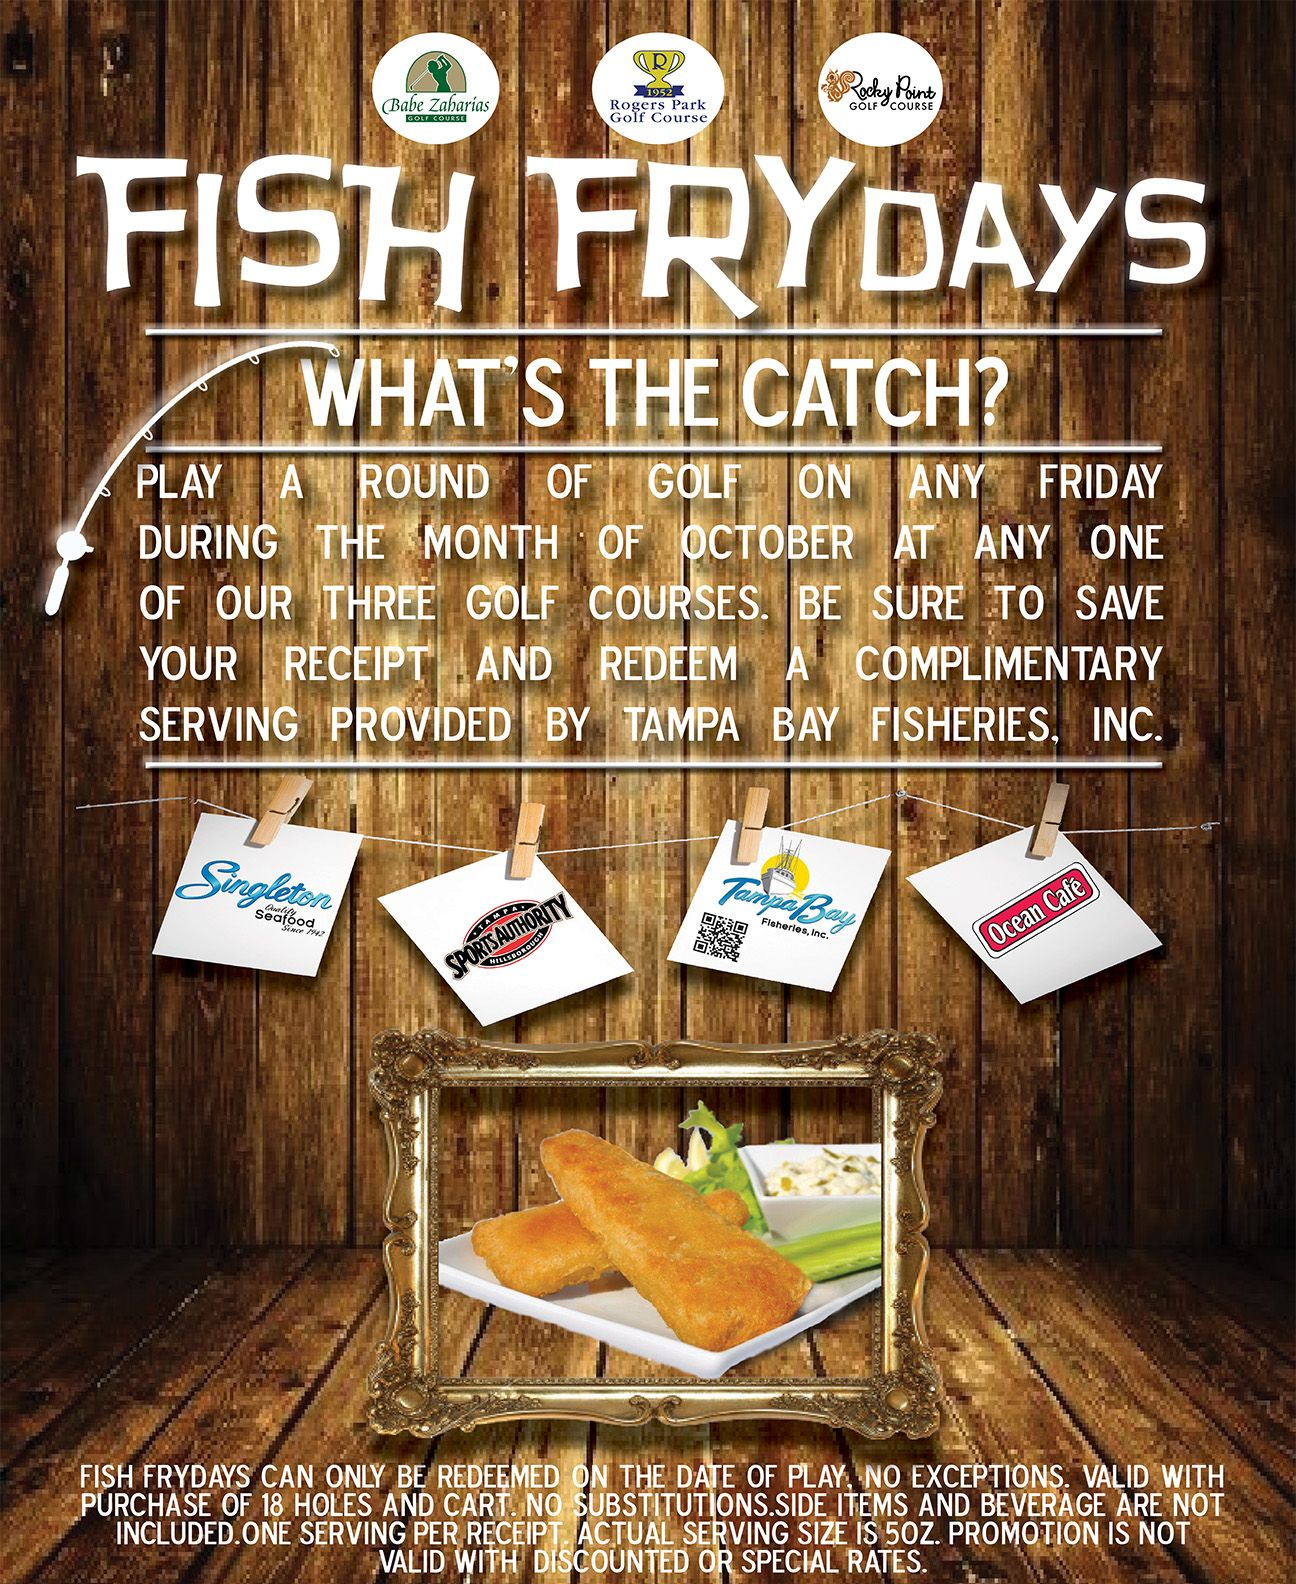 Fish FRYdays at any of our 3 golf courses Rocky Point